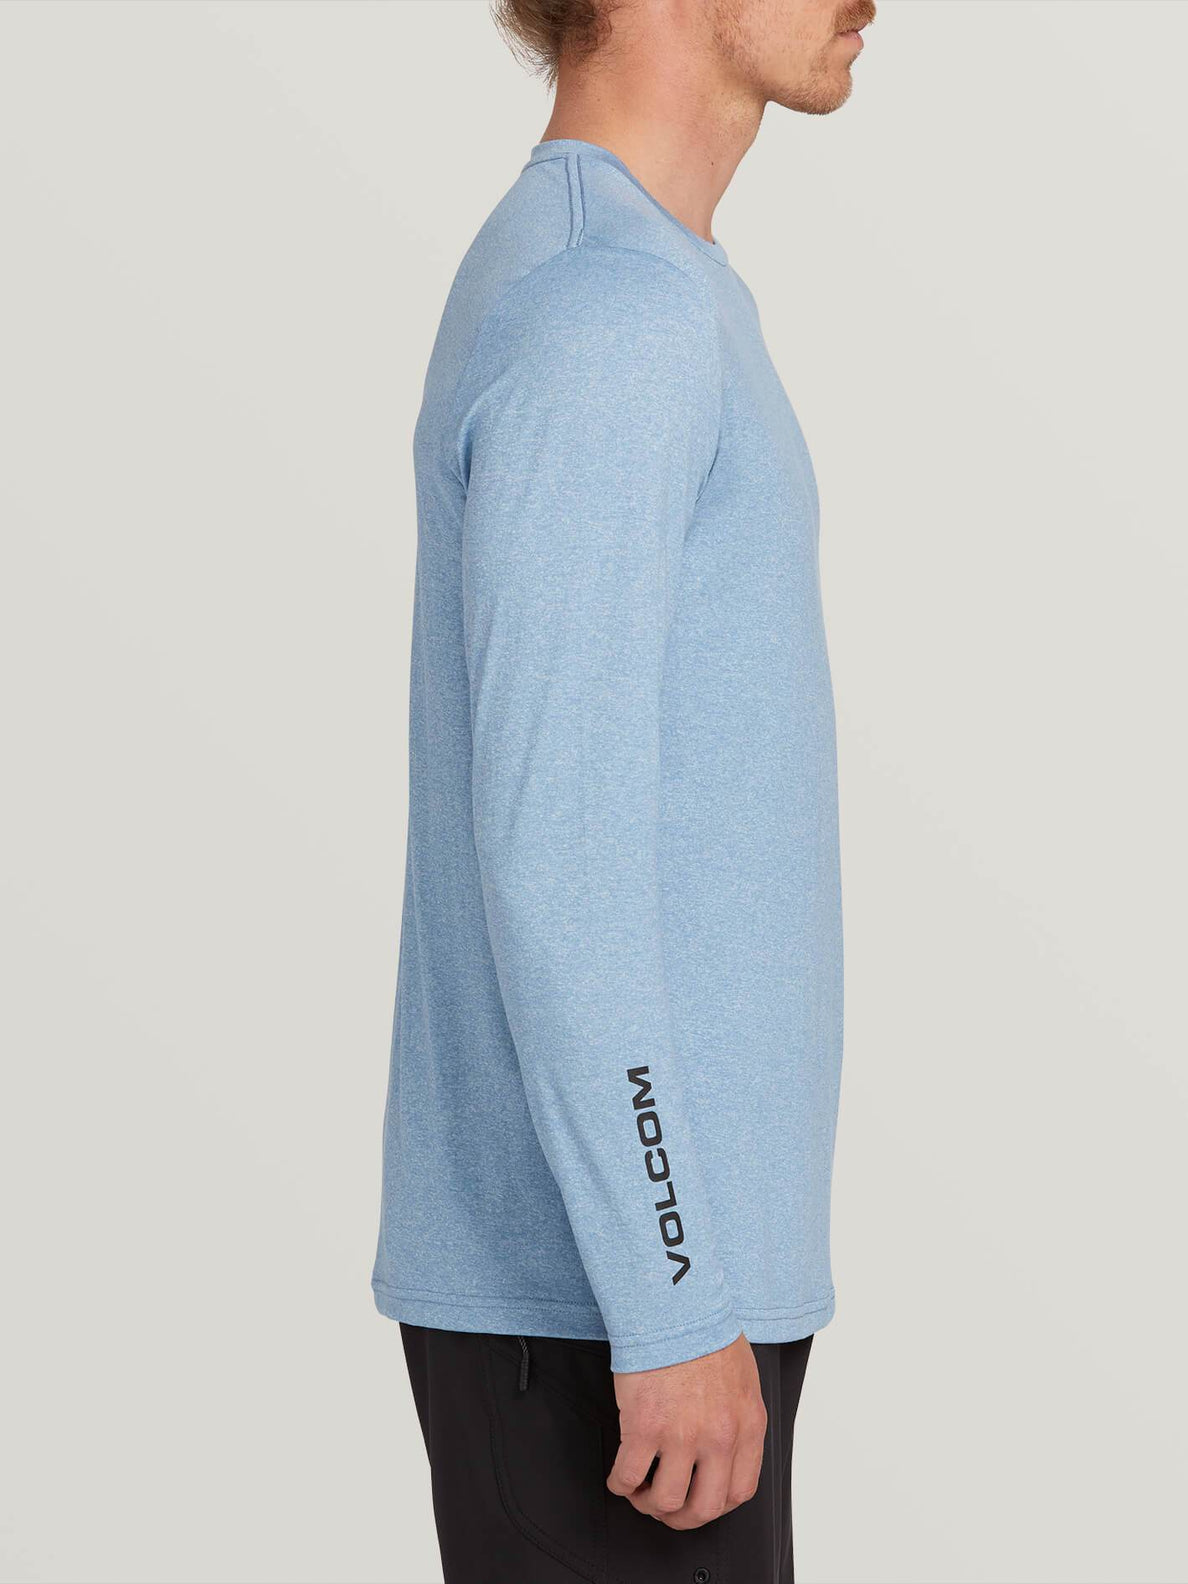 Lido Heather Long Sleeve Rashguard In Vintage Blue, Alternate View